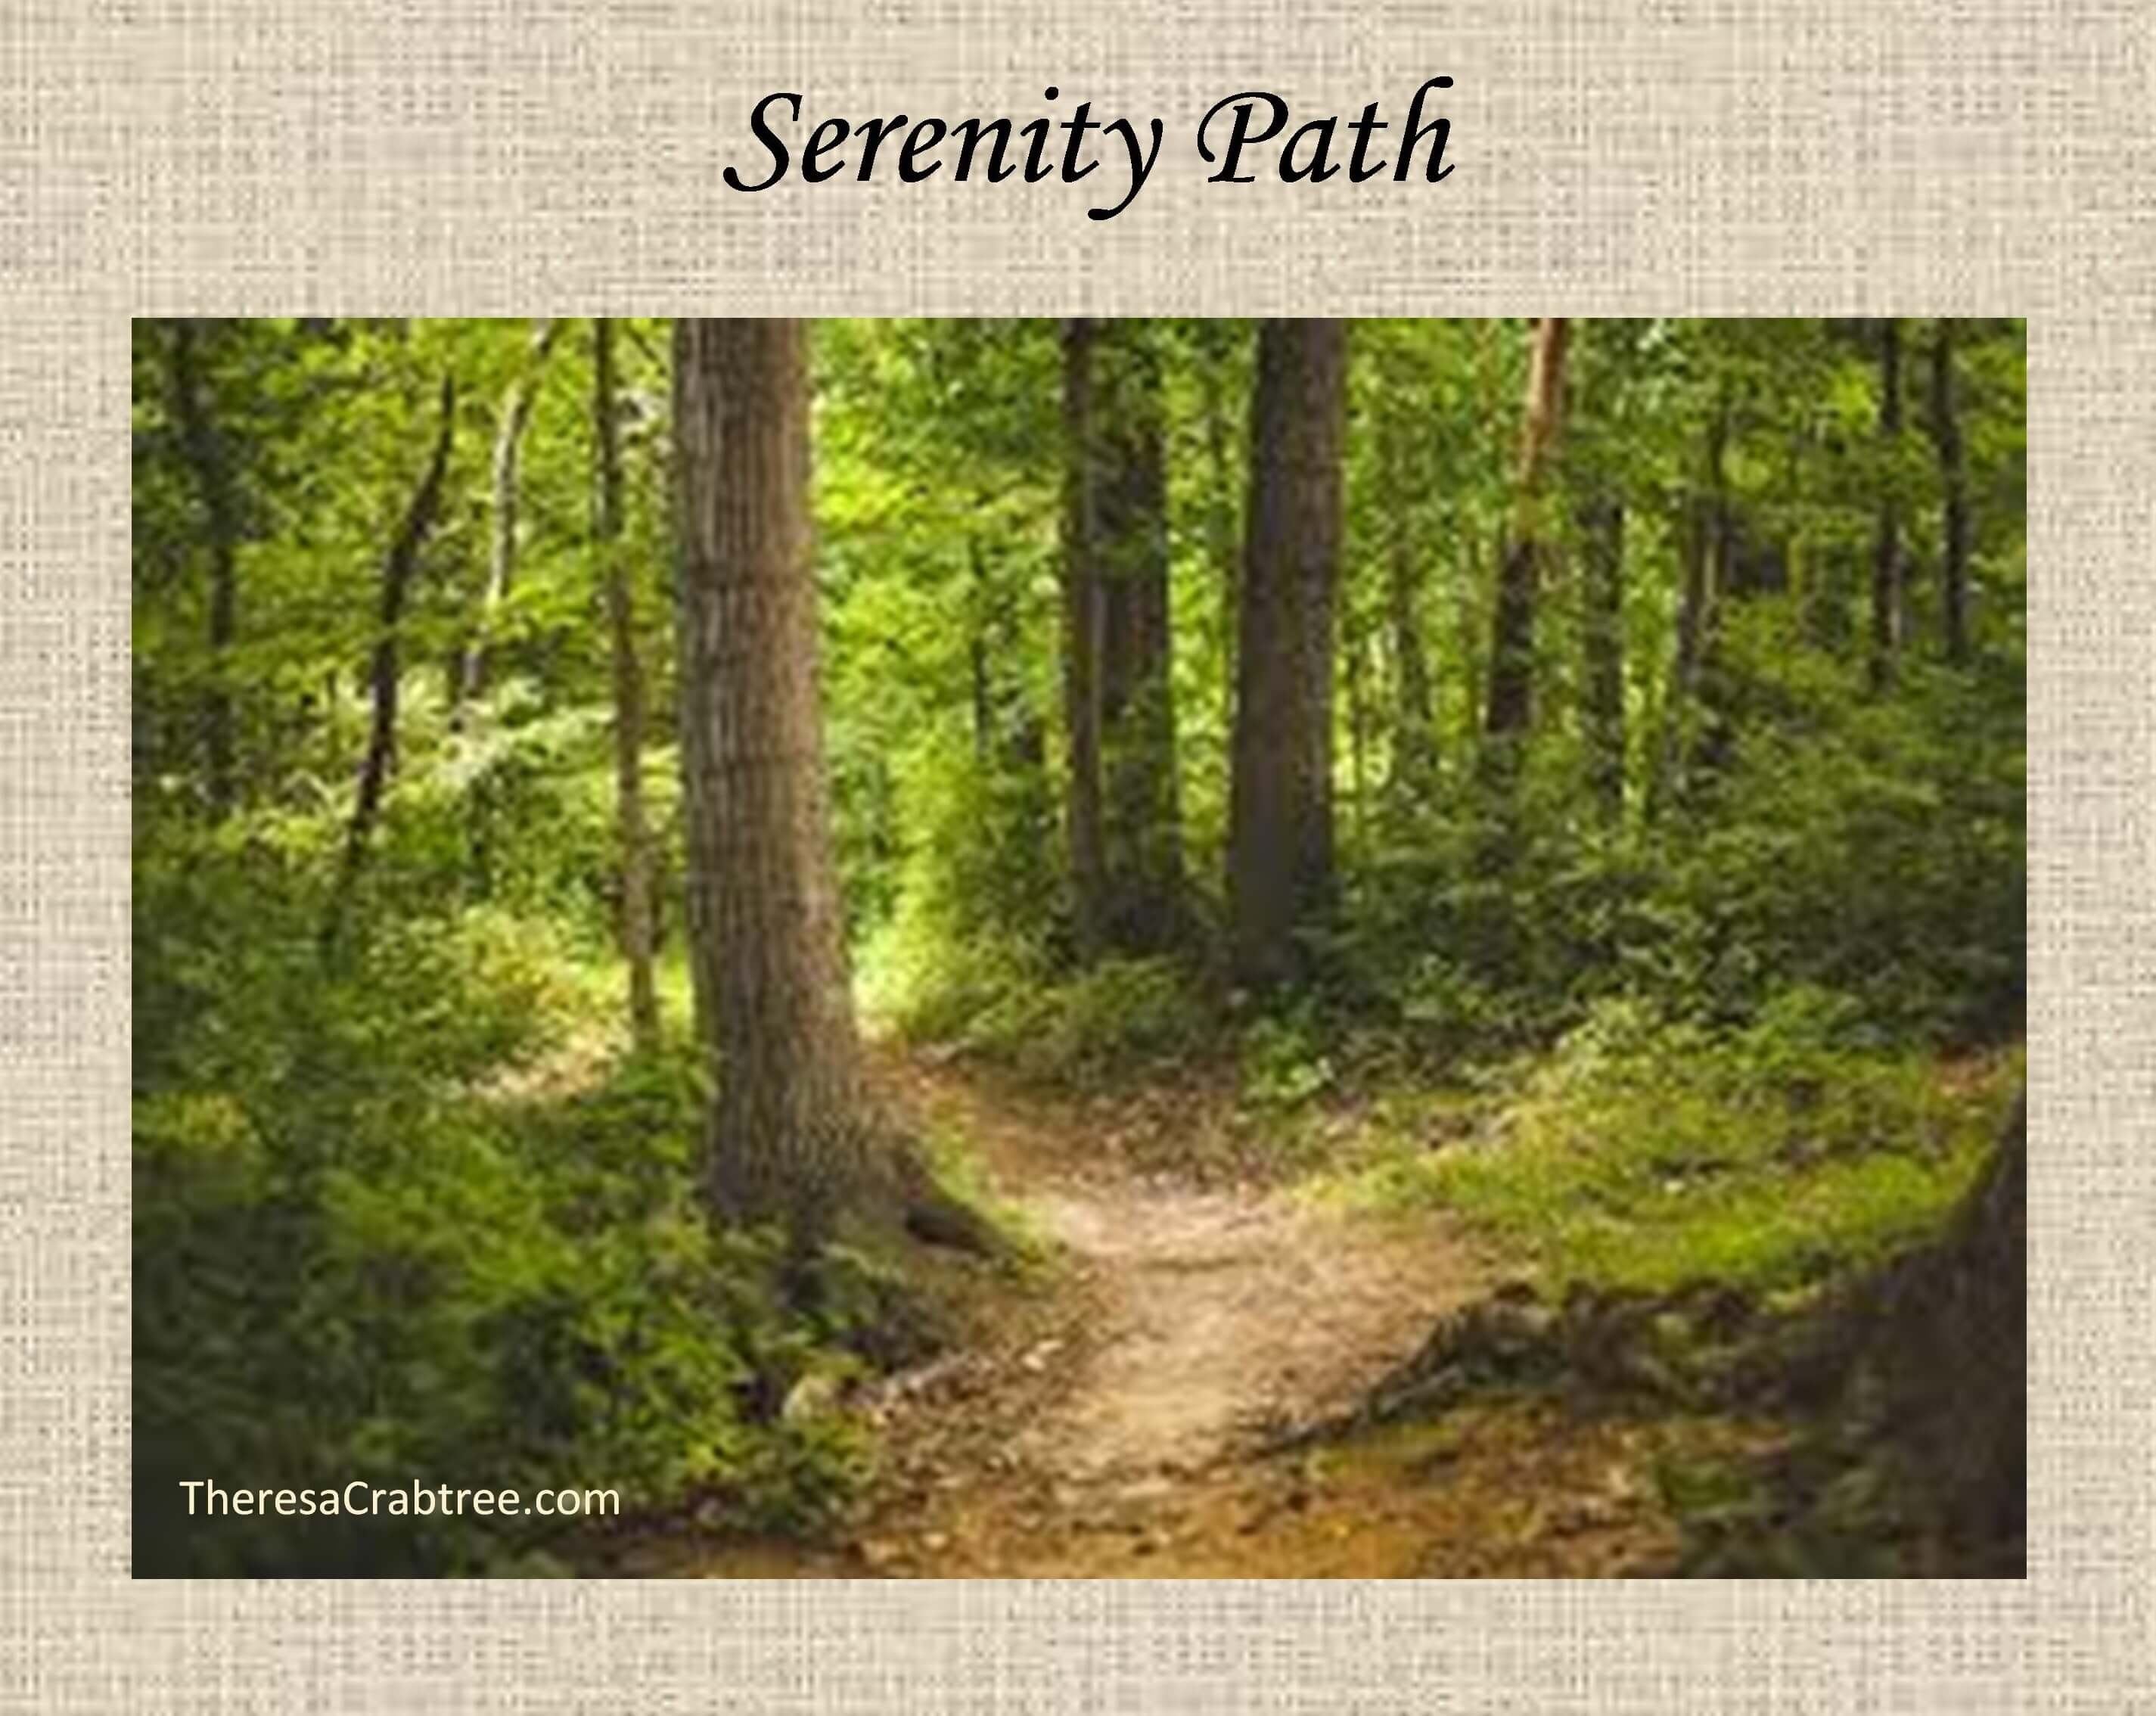 Soul Connection 251 ~ Serenity Path